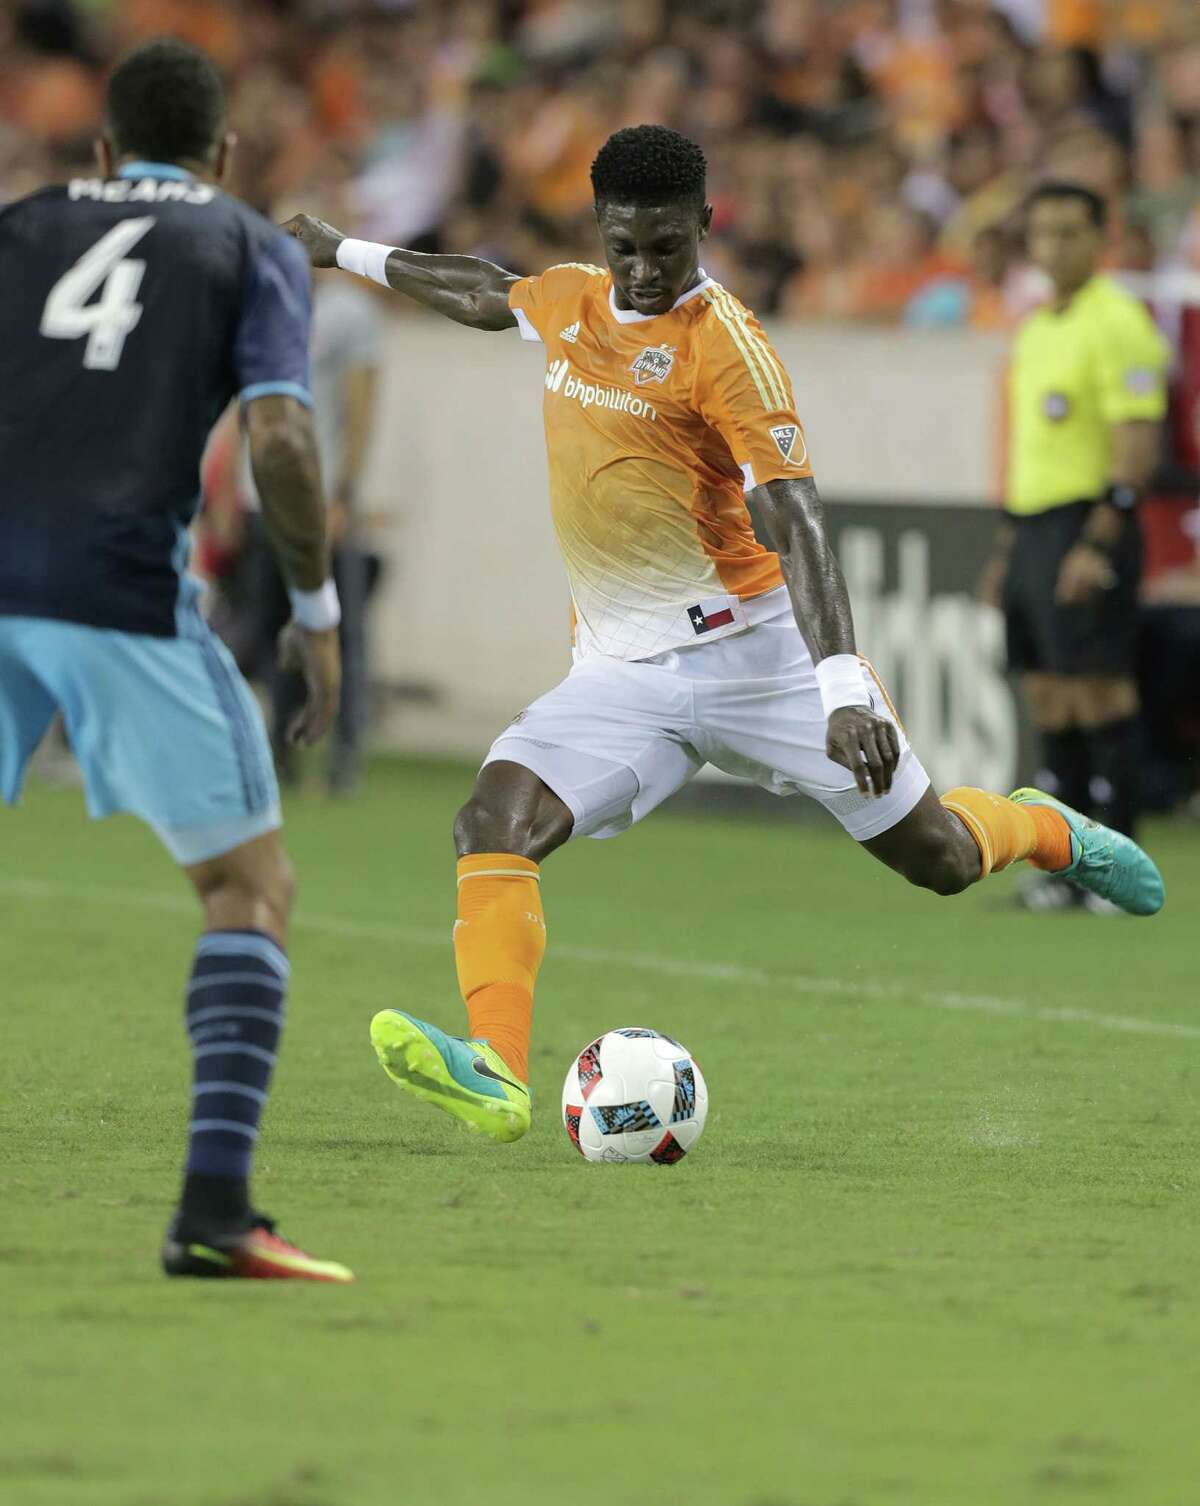 Houston Dynamo defender Jalil Anibaba (2) kicks the ball in the first half of MLS game action on Wednesday, Aug. 24, 2016, in Houston. ( Elizabeth Conley / Houston Chronicle )